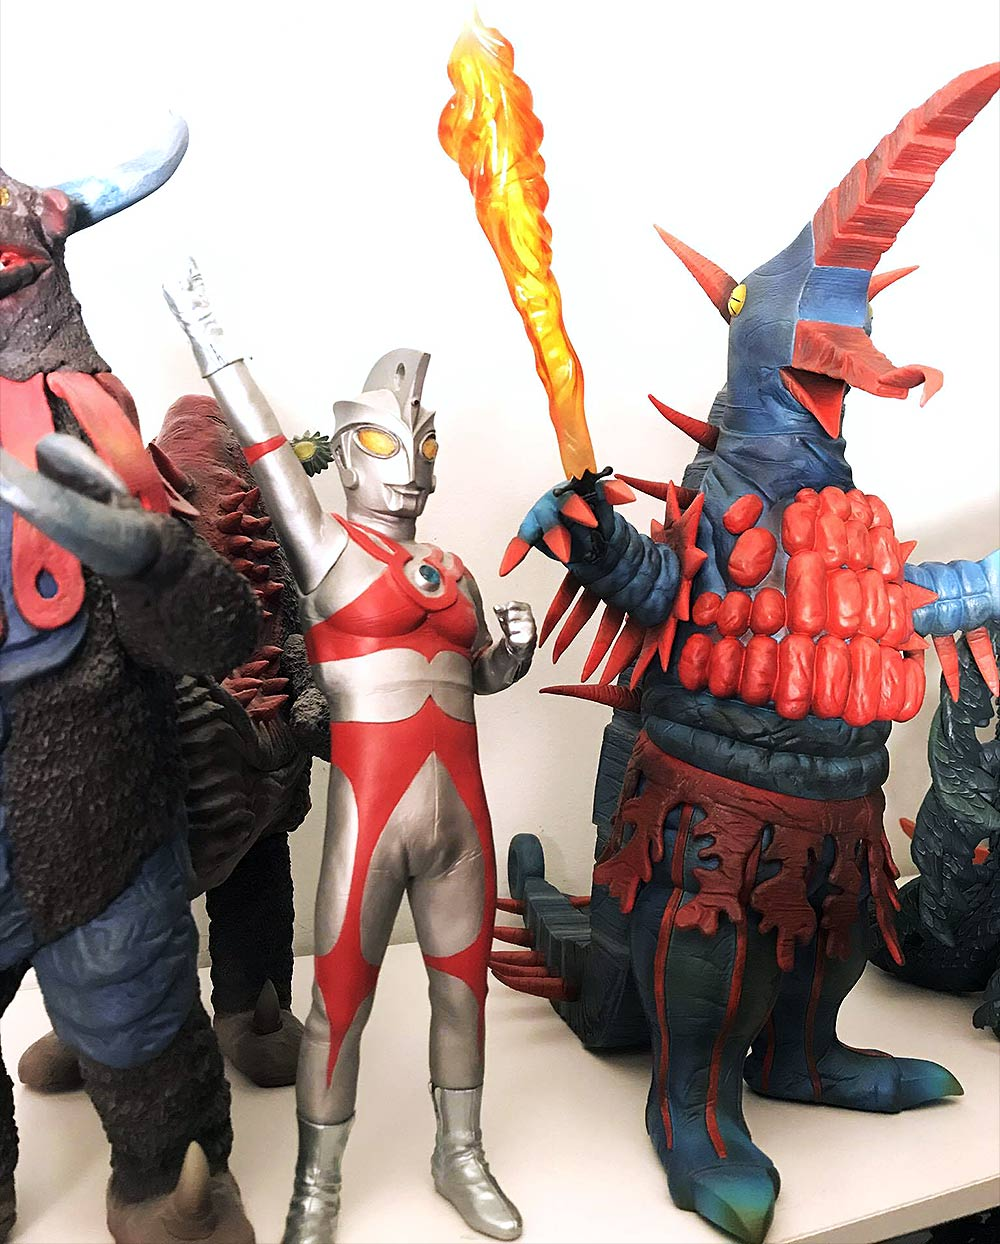 The X-Plus Firemons vinyl figure beside the X-Plus Ultraman Ace. Photo by Vince Elliot.